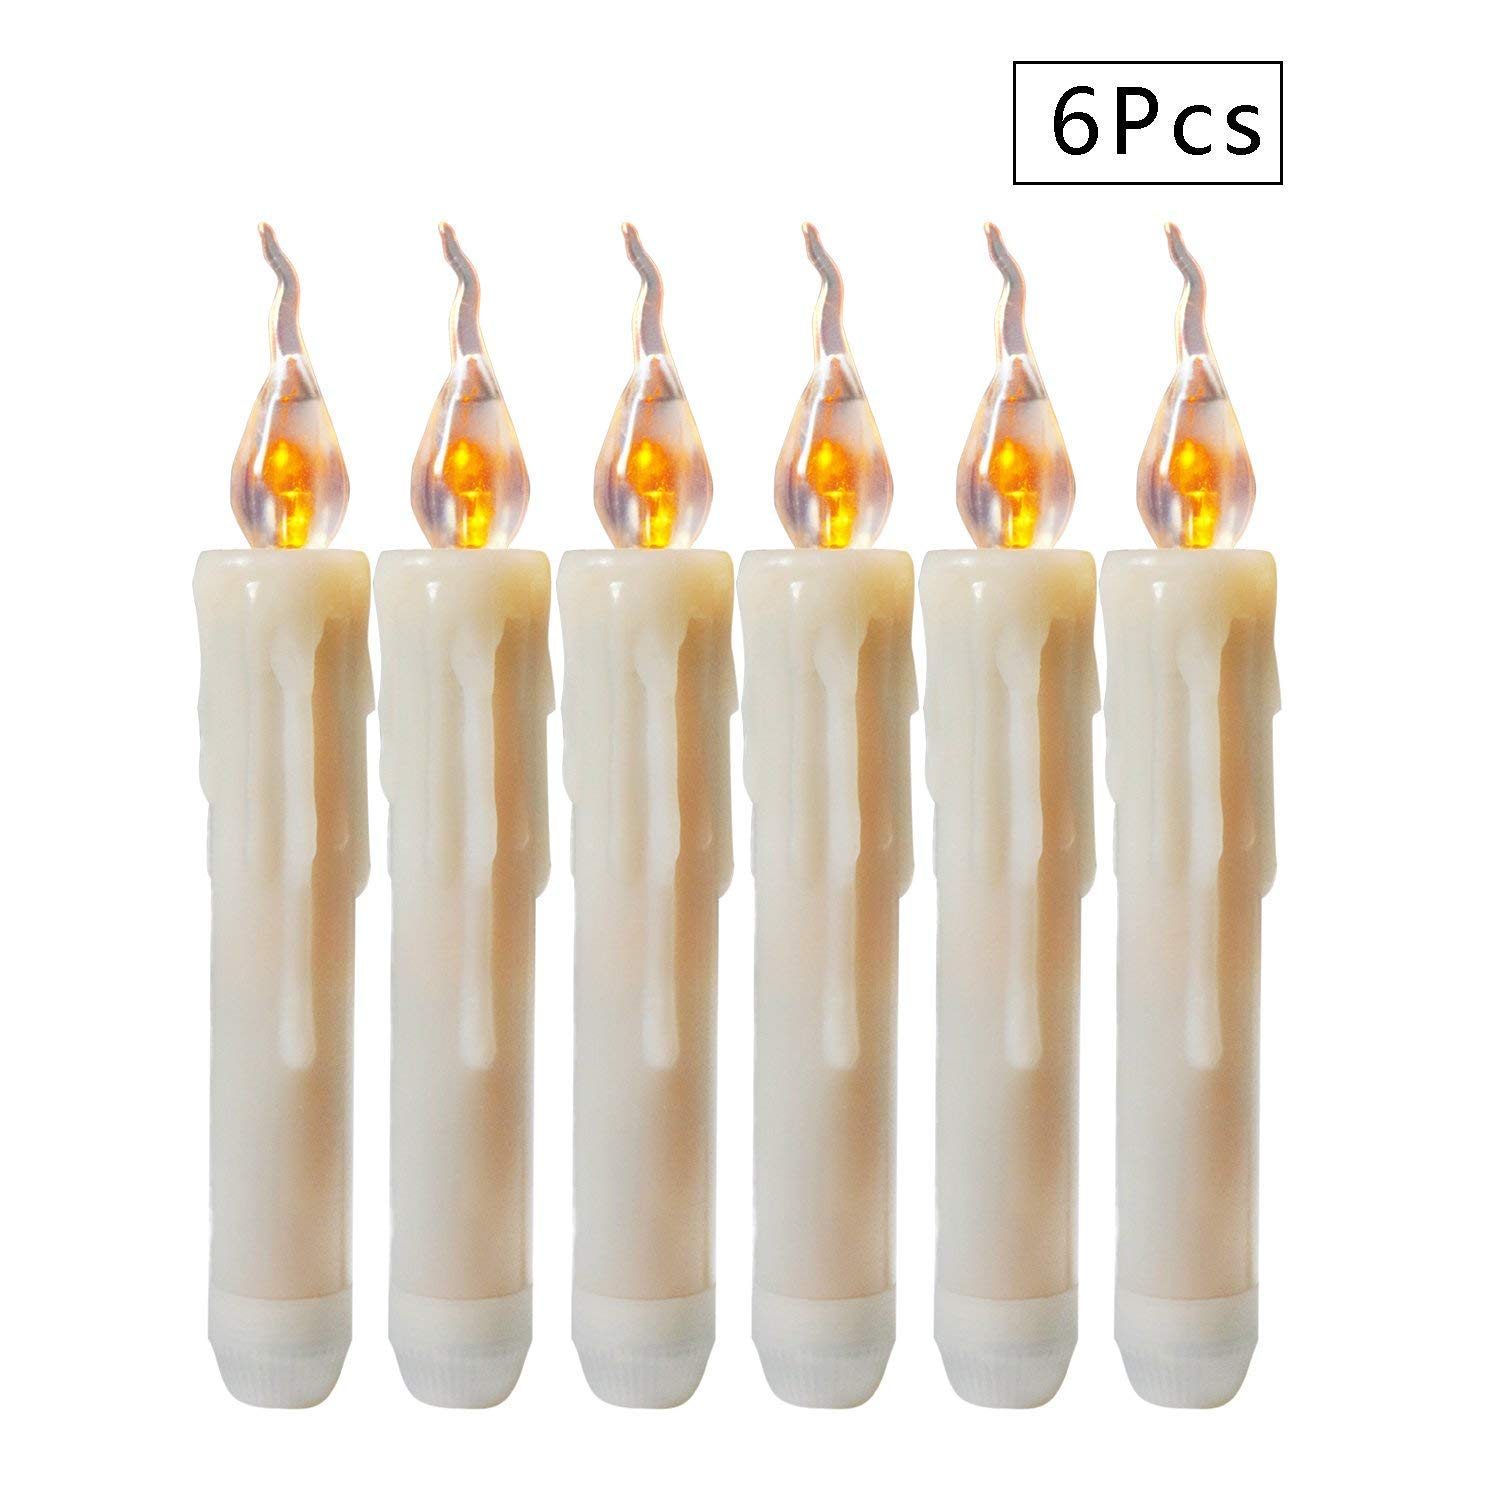 Micandle 6PCS Wax Dripped Amber Flickering Flameless Fake LED Taper Candle,Powered by 2AA Batteries(NOT Included) Lighting 120+Hrs, Perfect Stick Candle for Halloween,X-mas,Home Decor.Size:1''D6.7''H